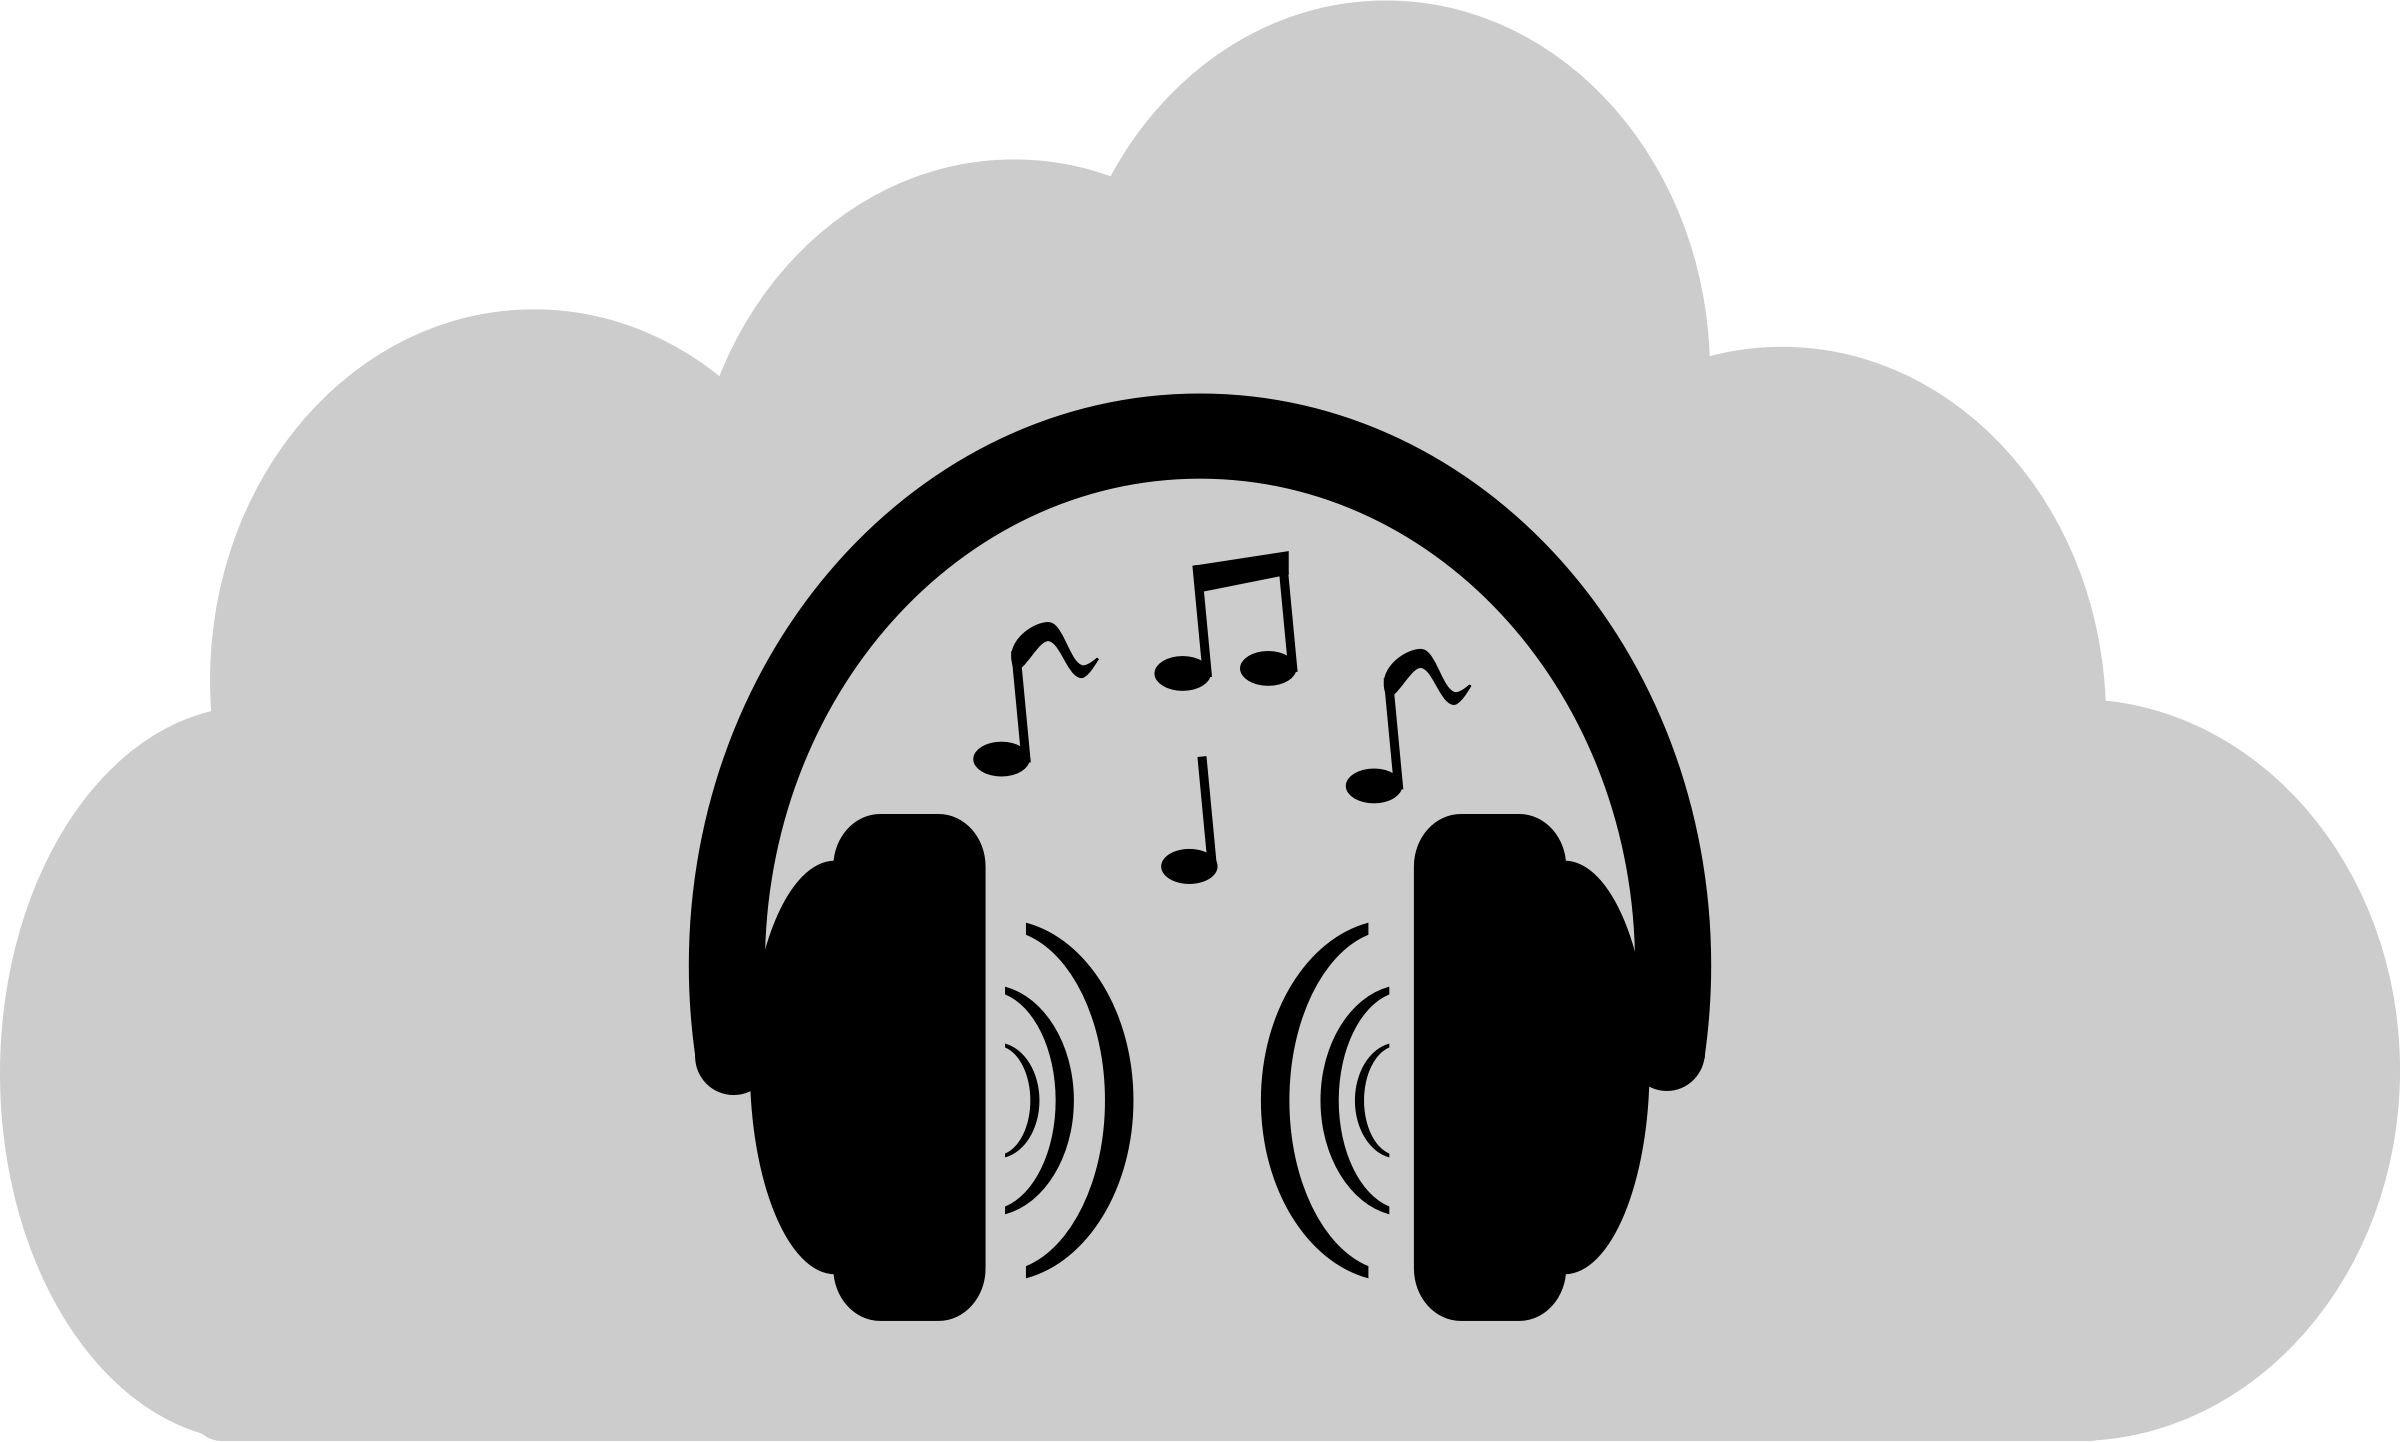 Headphone clipart music note 3 Clipart (PNG) IMAGE BIG